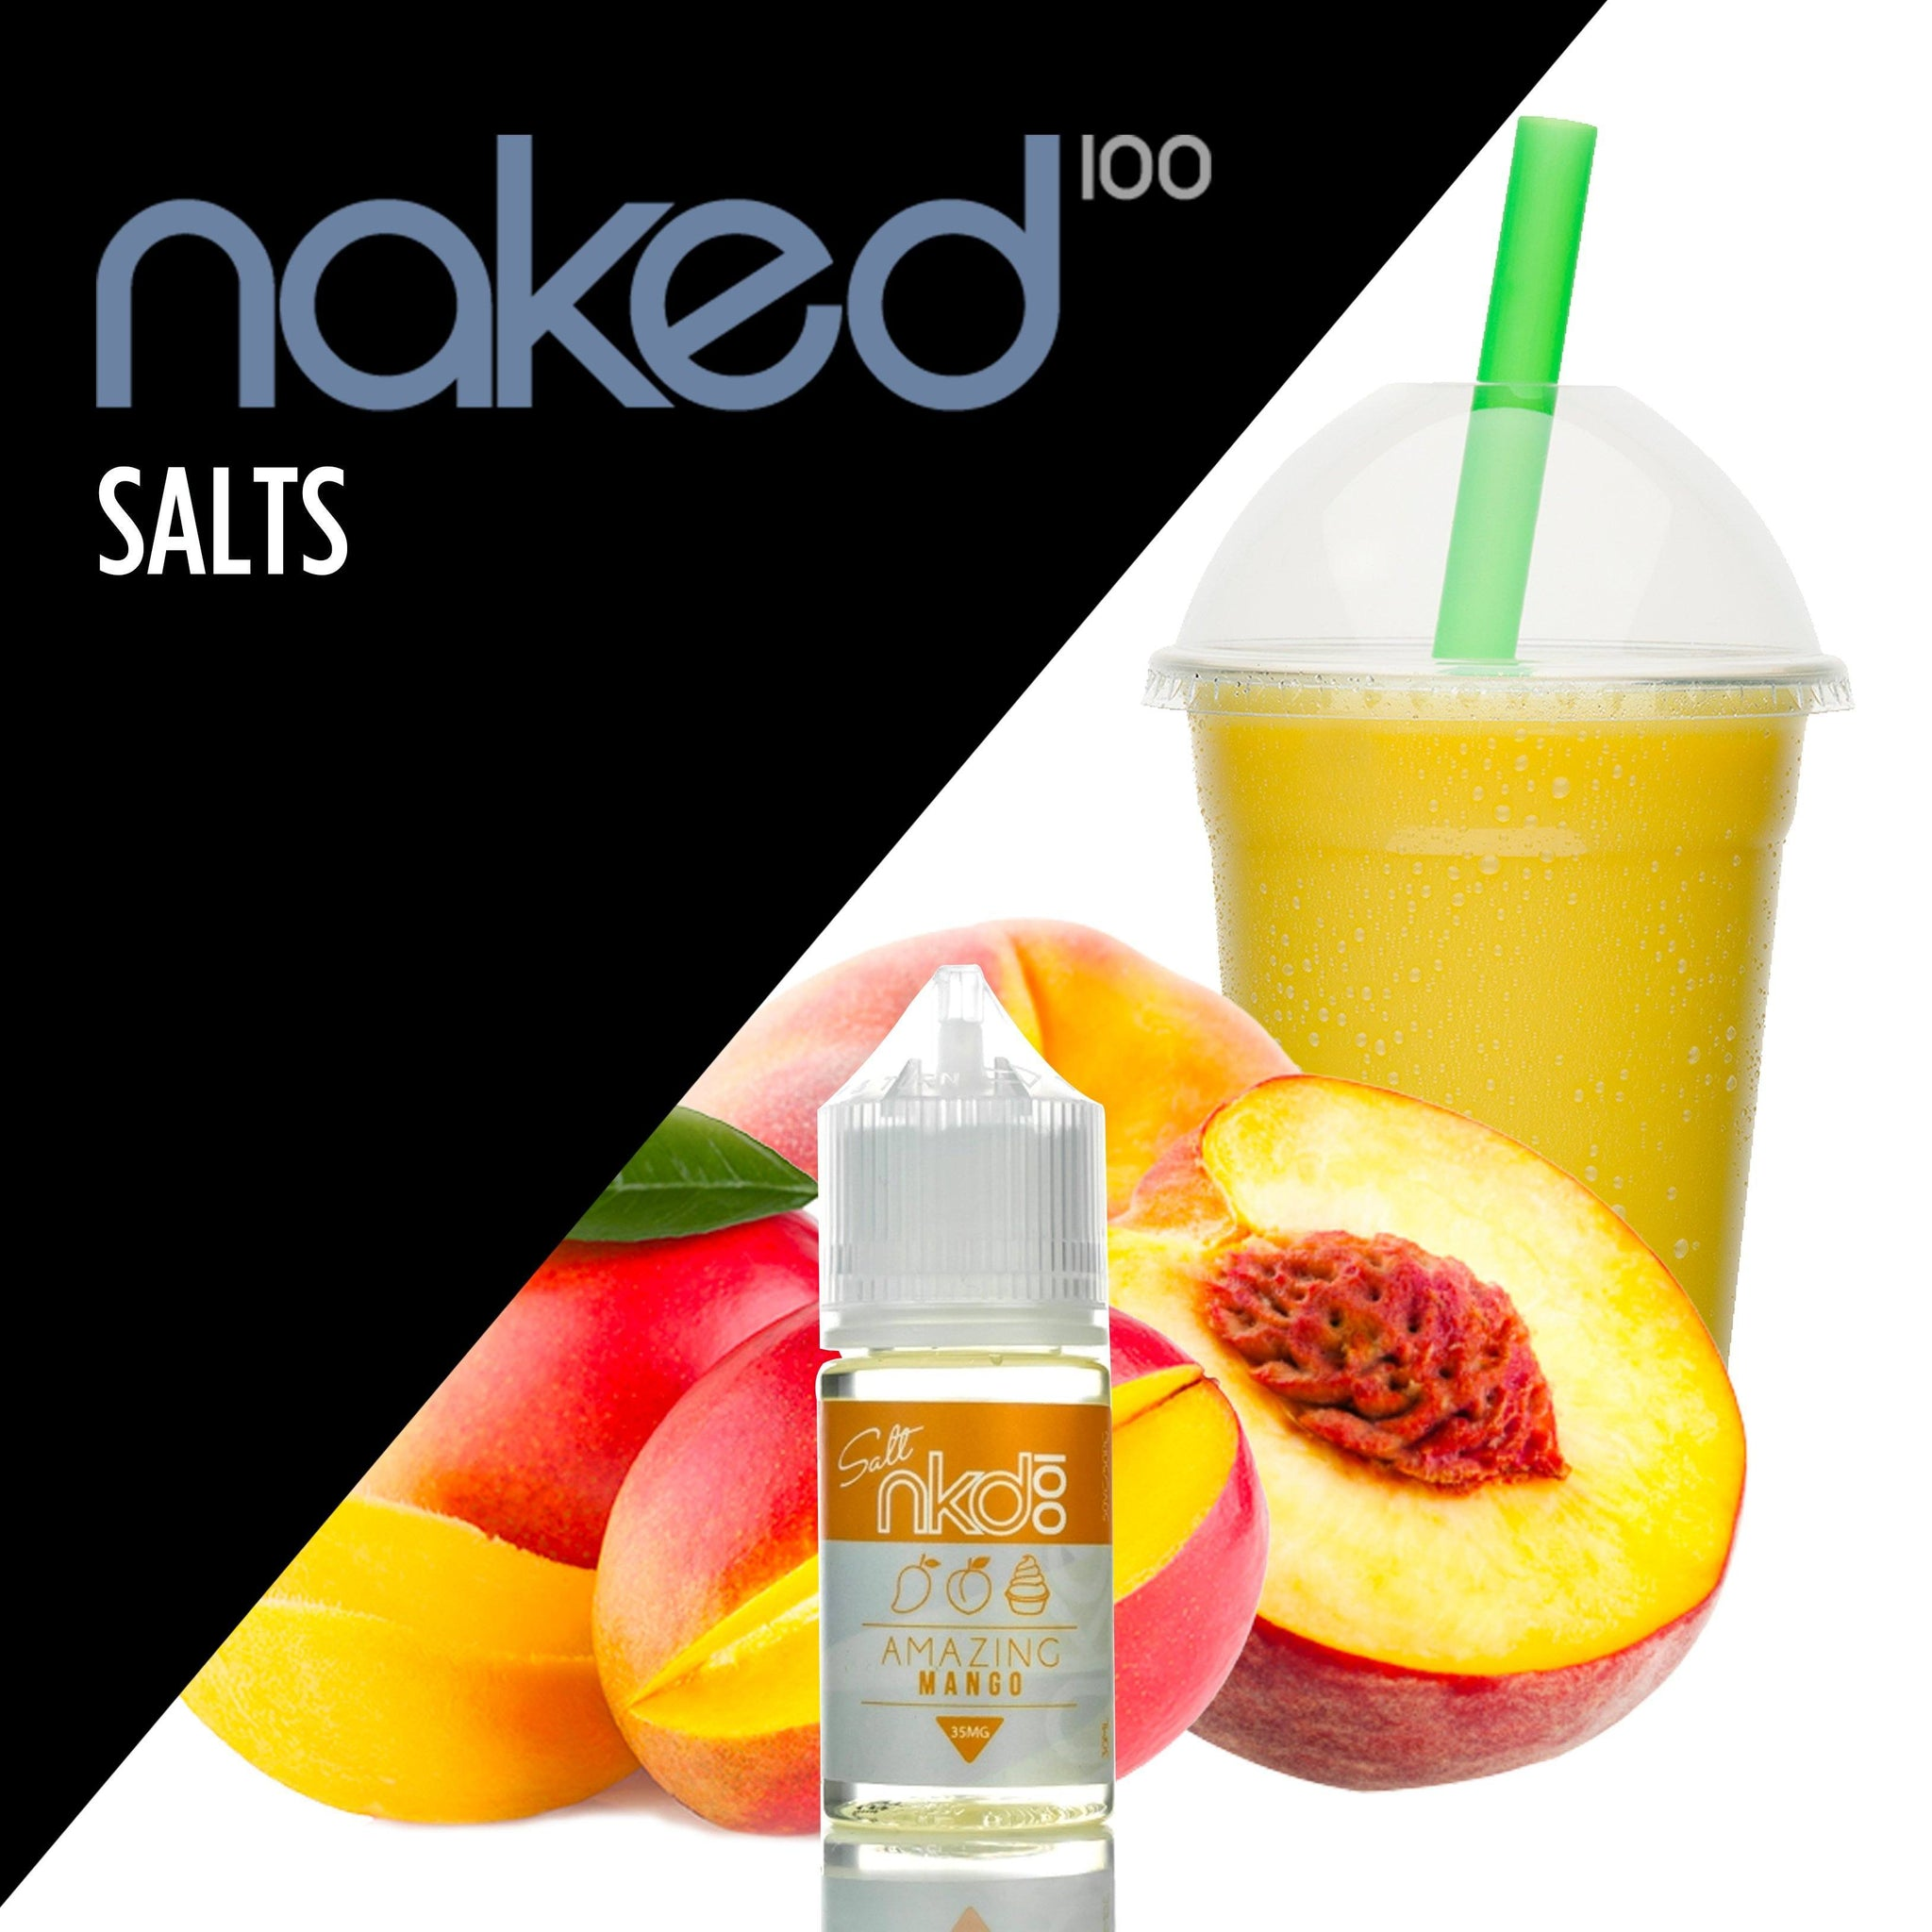 Naked 100 Salts,- Amazing Mango by Naked 100 Salts - E-Juice Plug